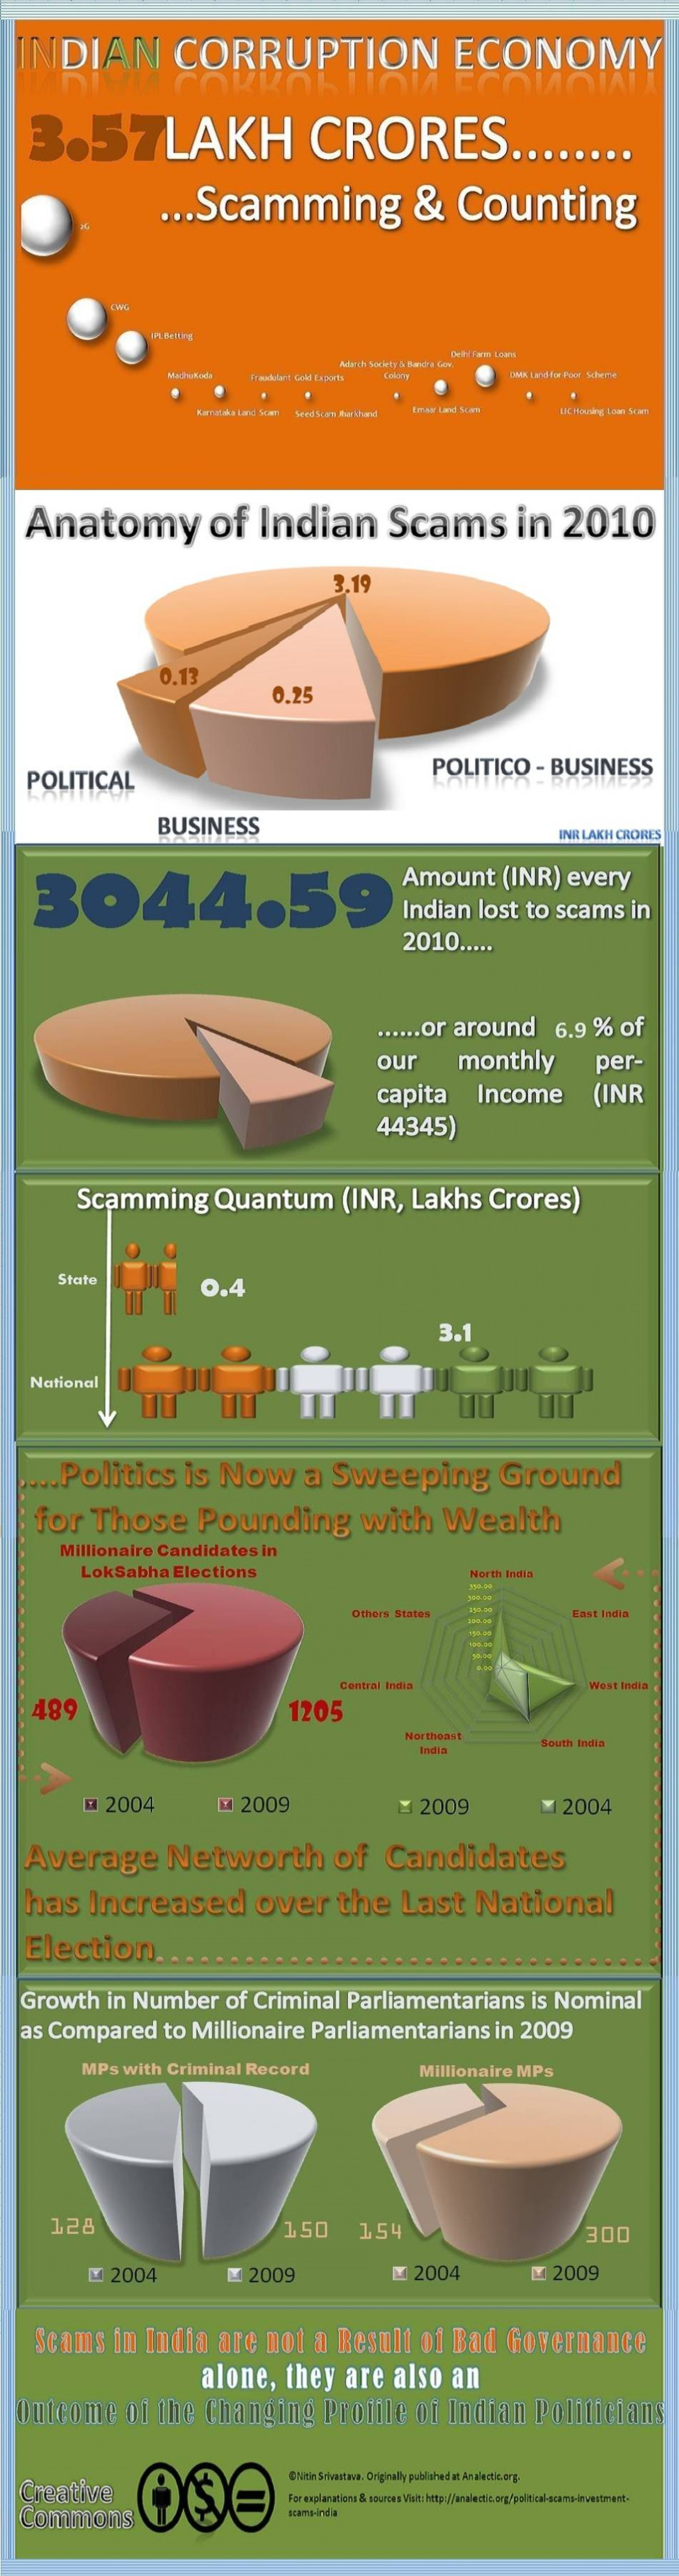 Corruption on The Rise in India Infographic